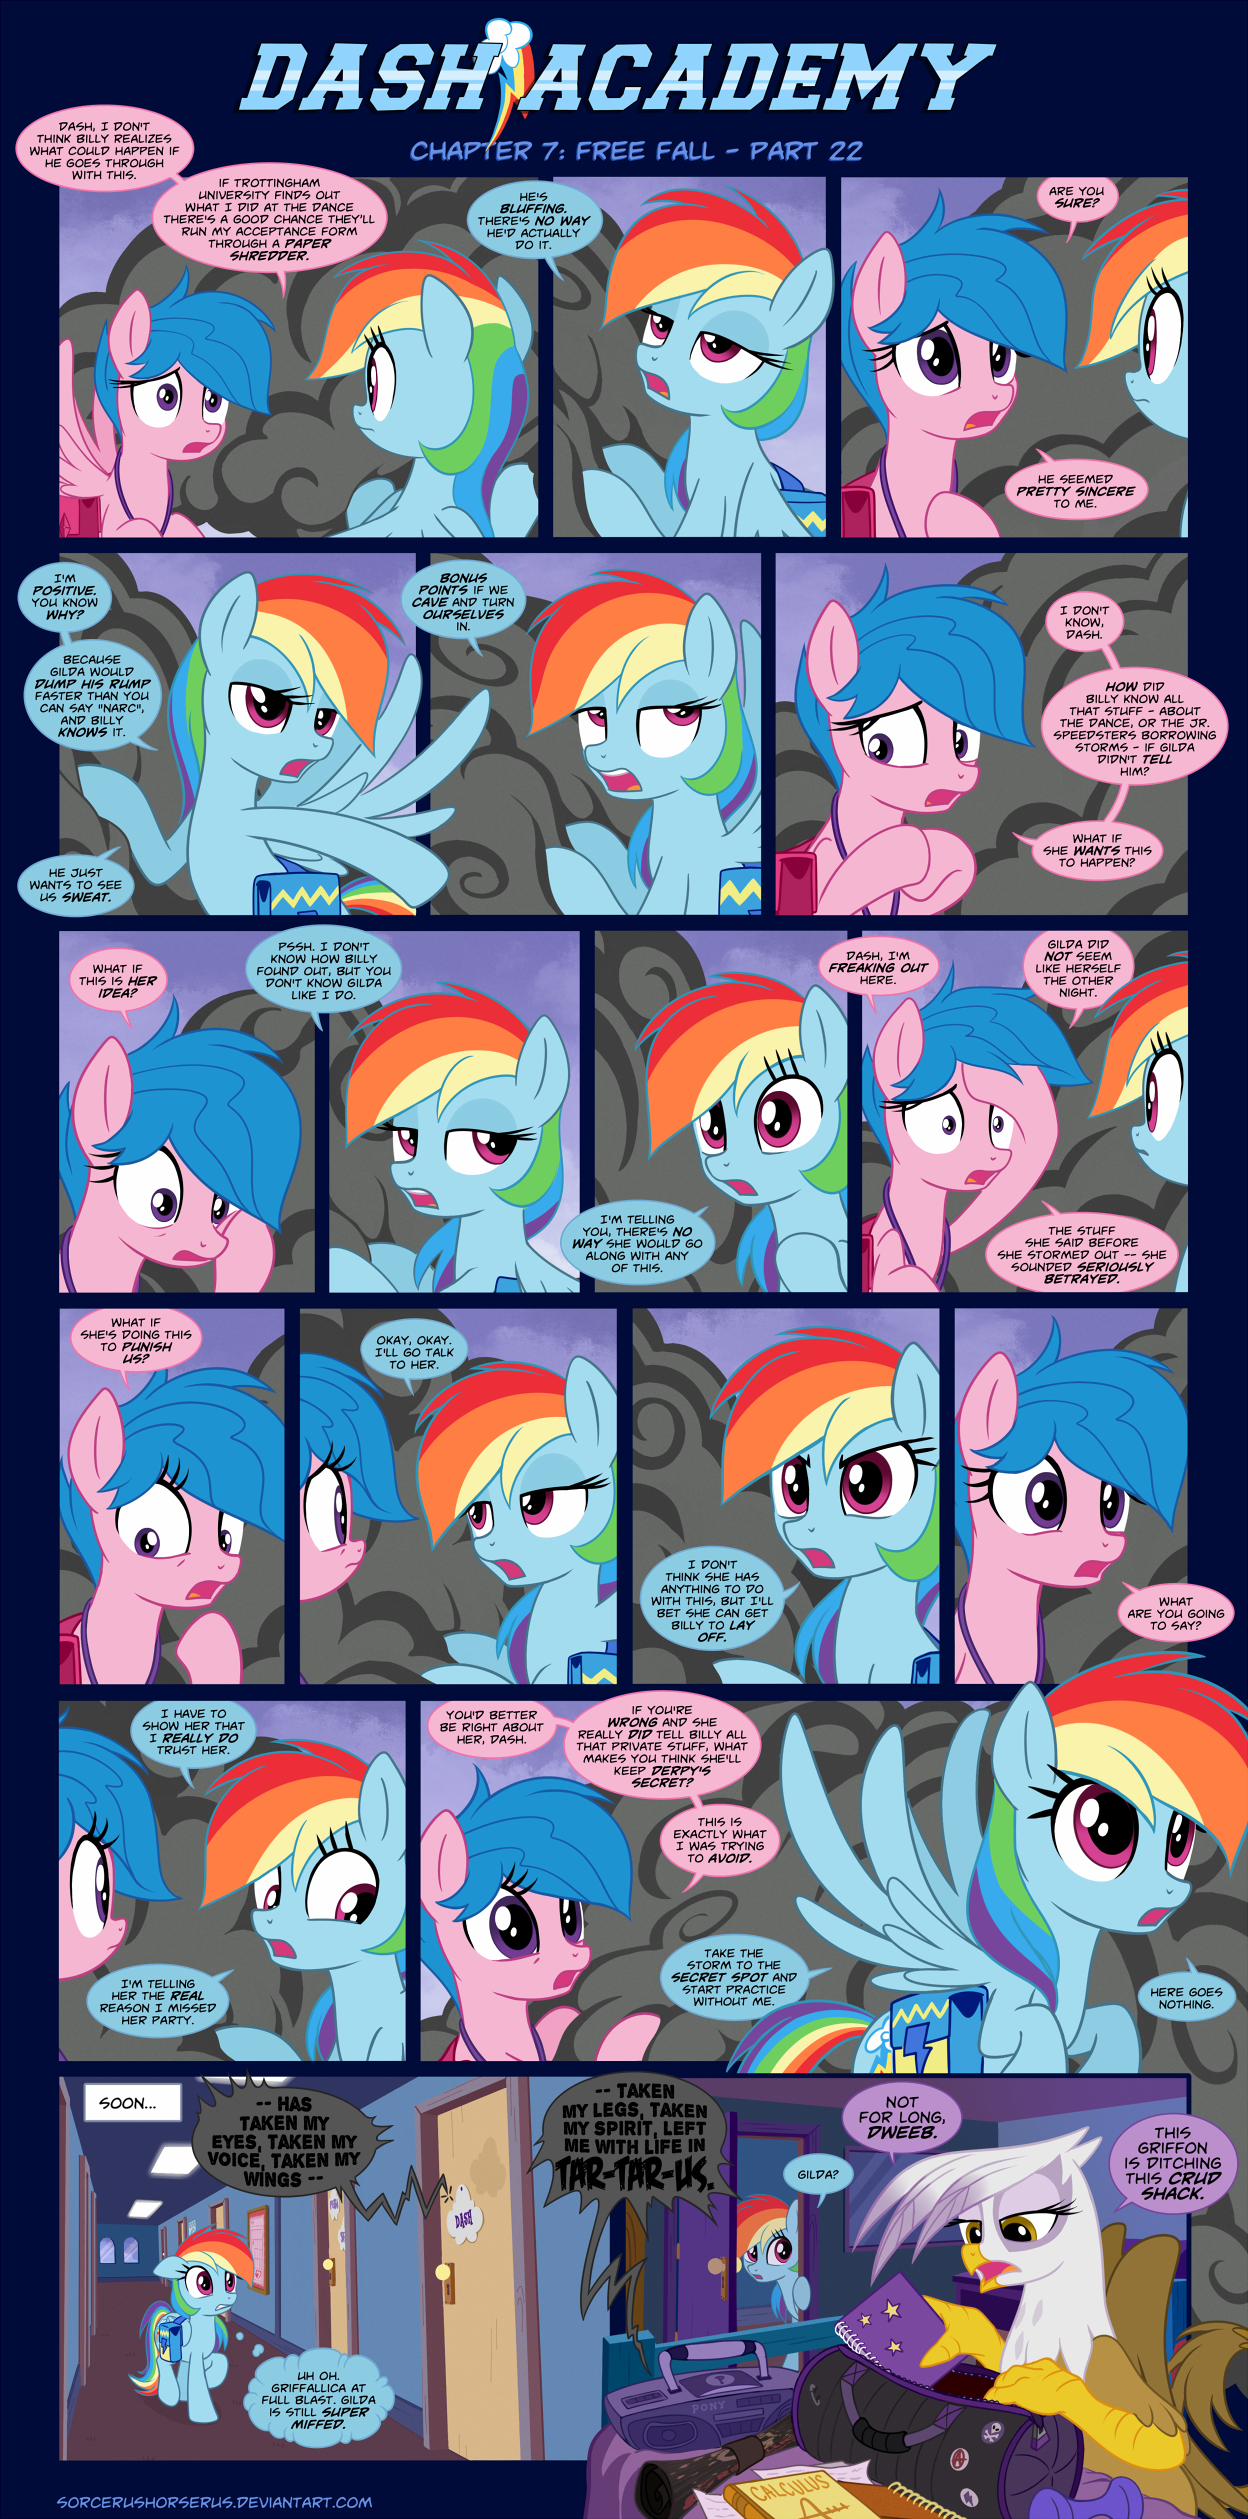 Dash Academy Chapter 7 - Free Fall #22